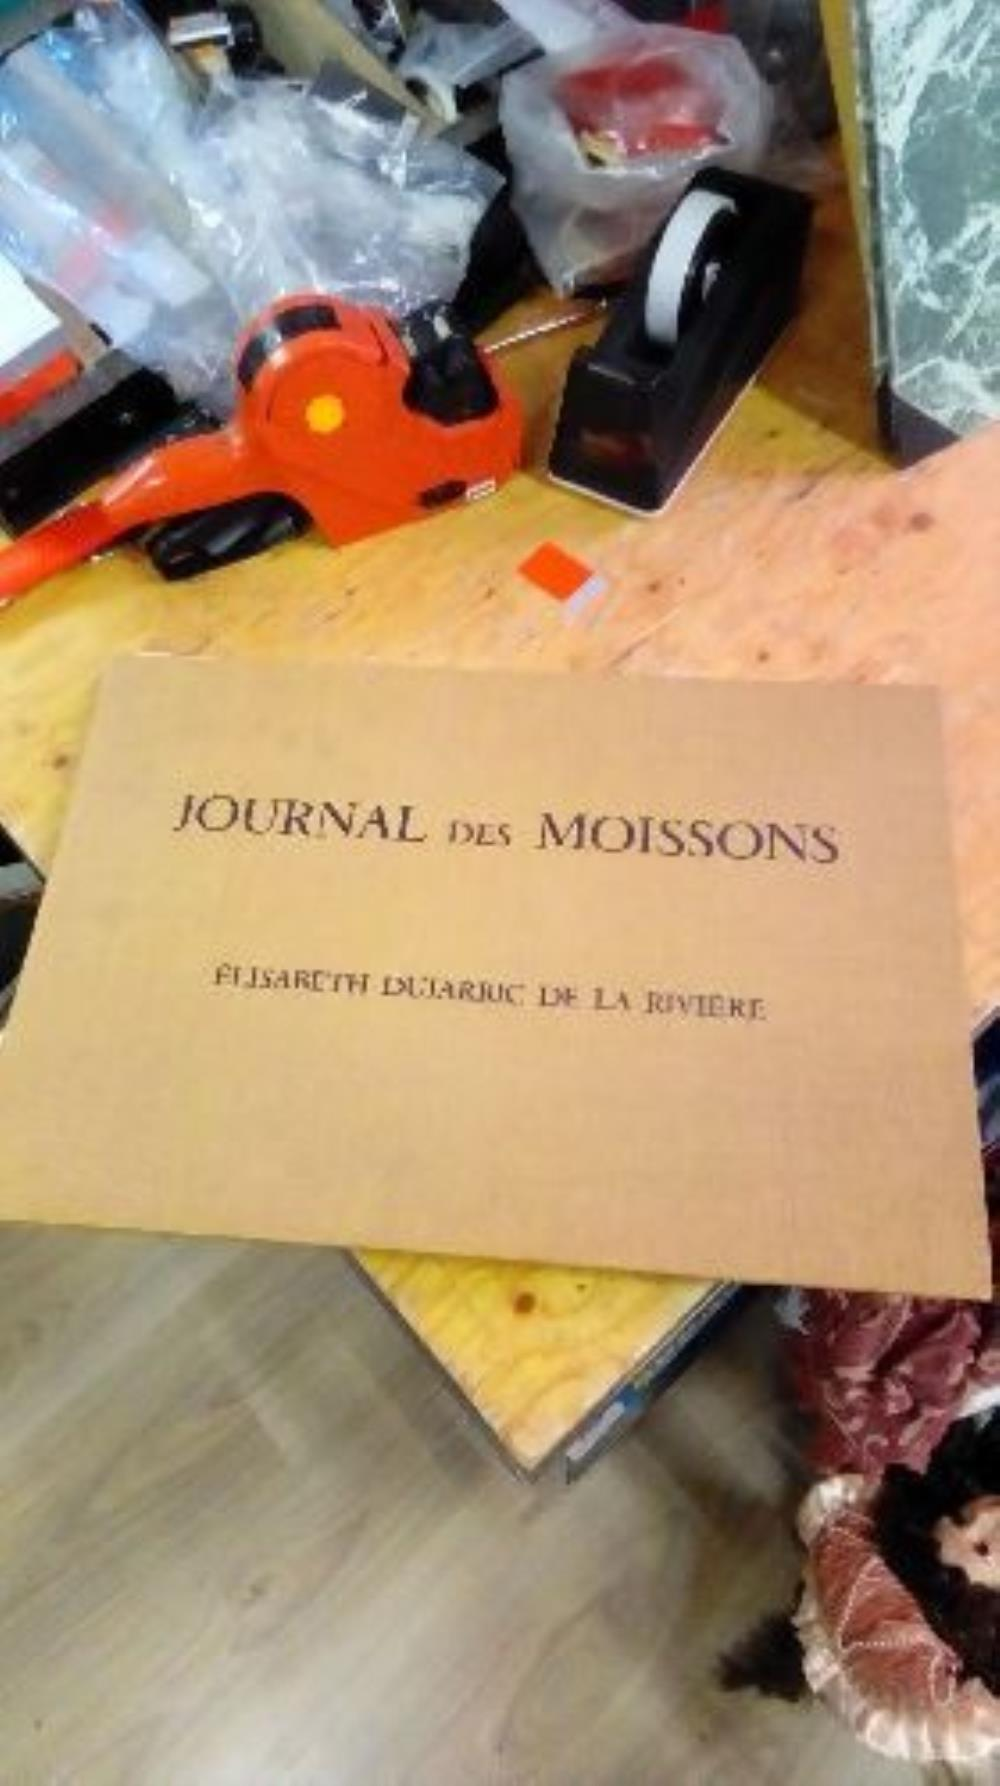 JOURNAL DES MOISSONS